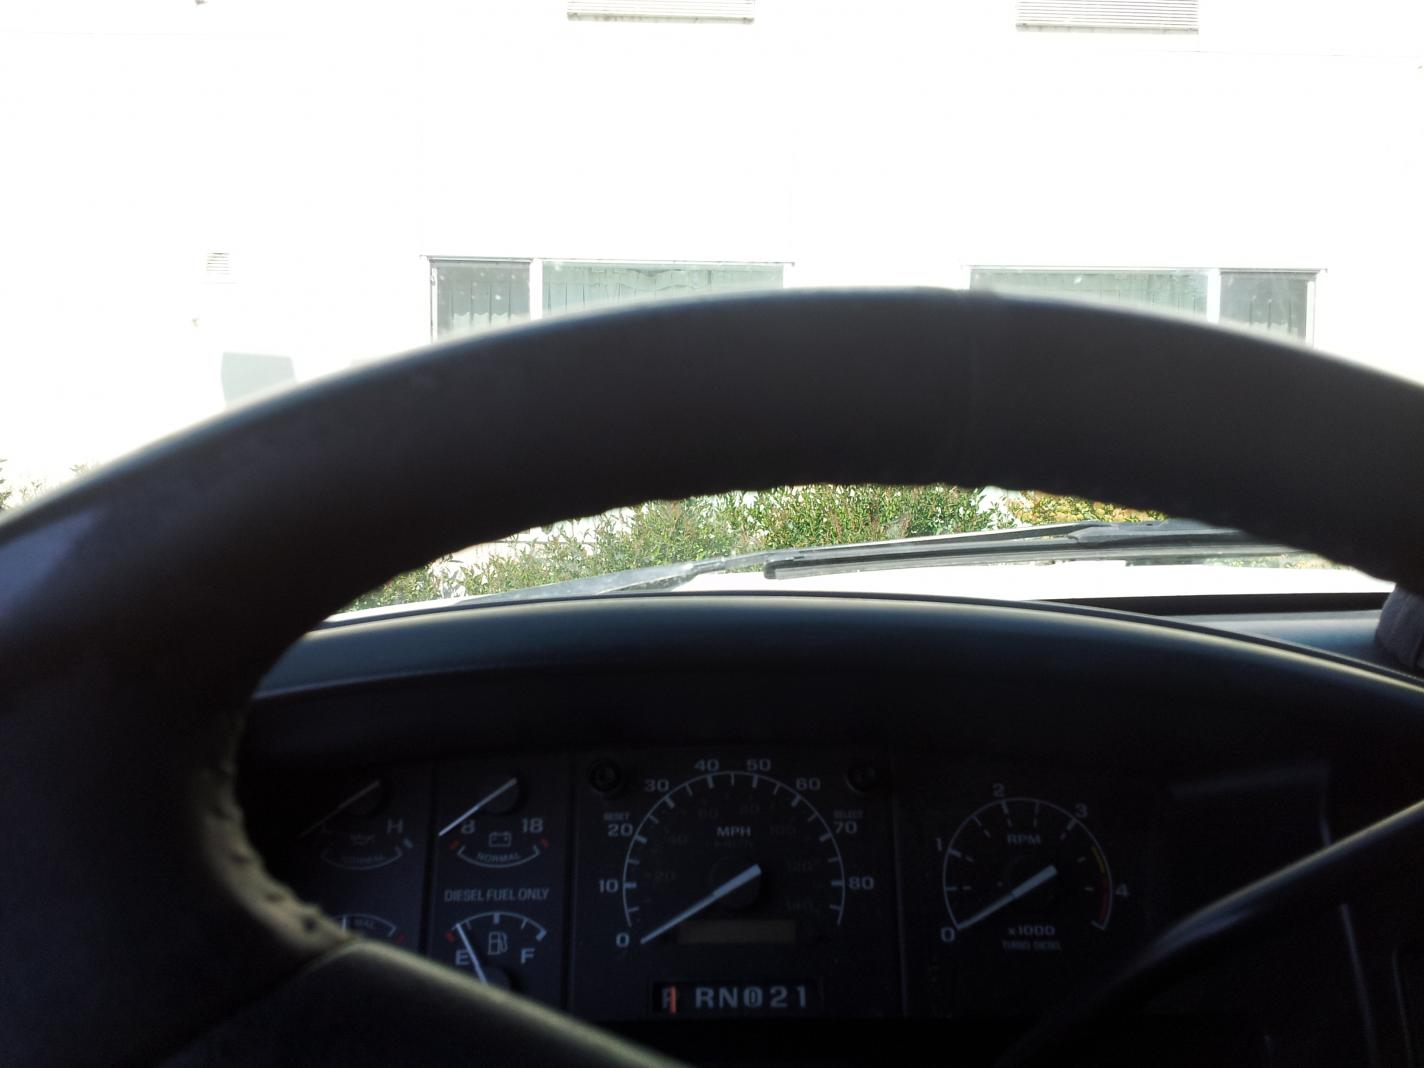 Gunny HUD (Heads Up Display) Mod....-low-dash-angle-front.jpg